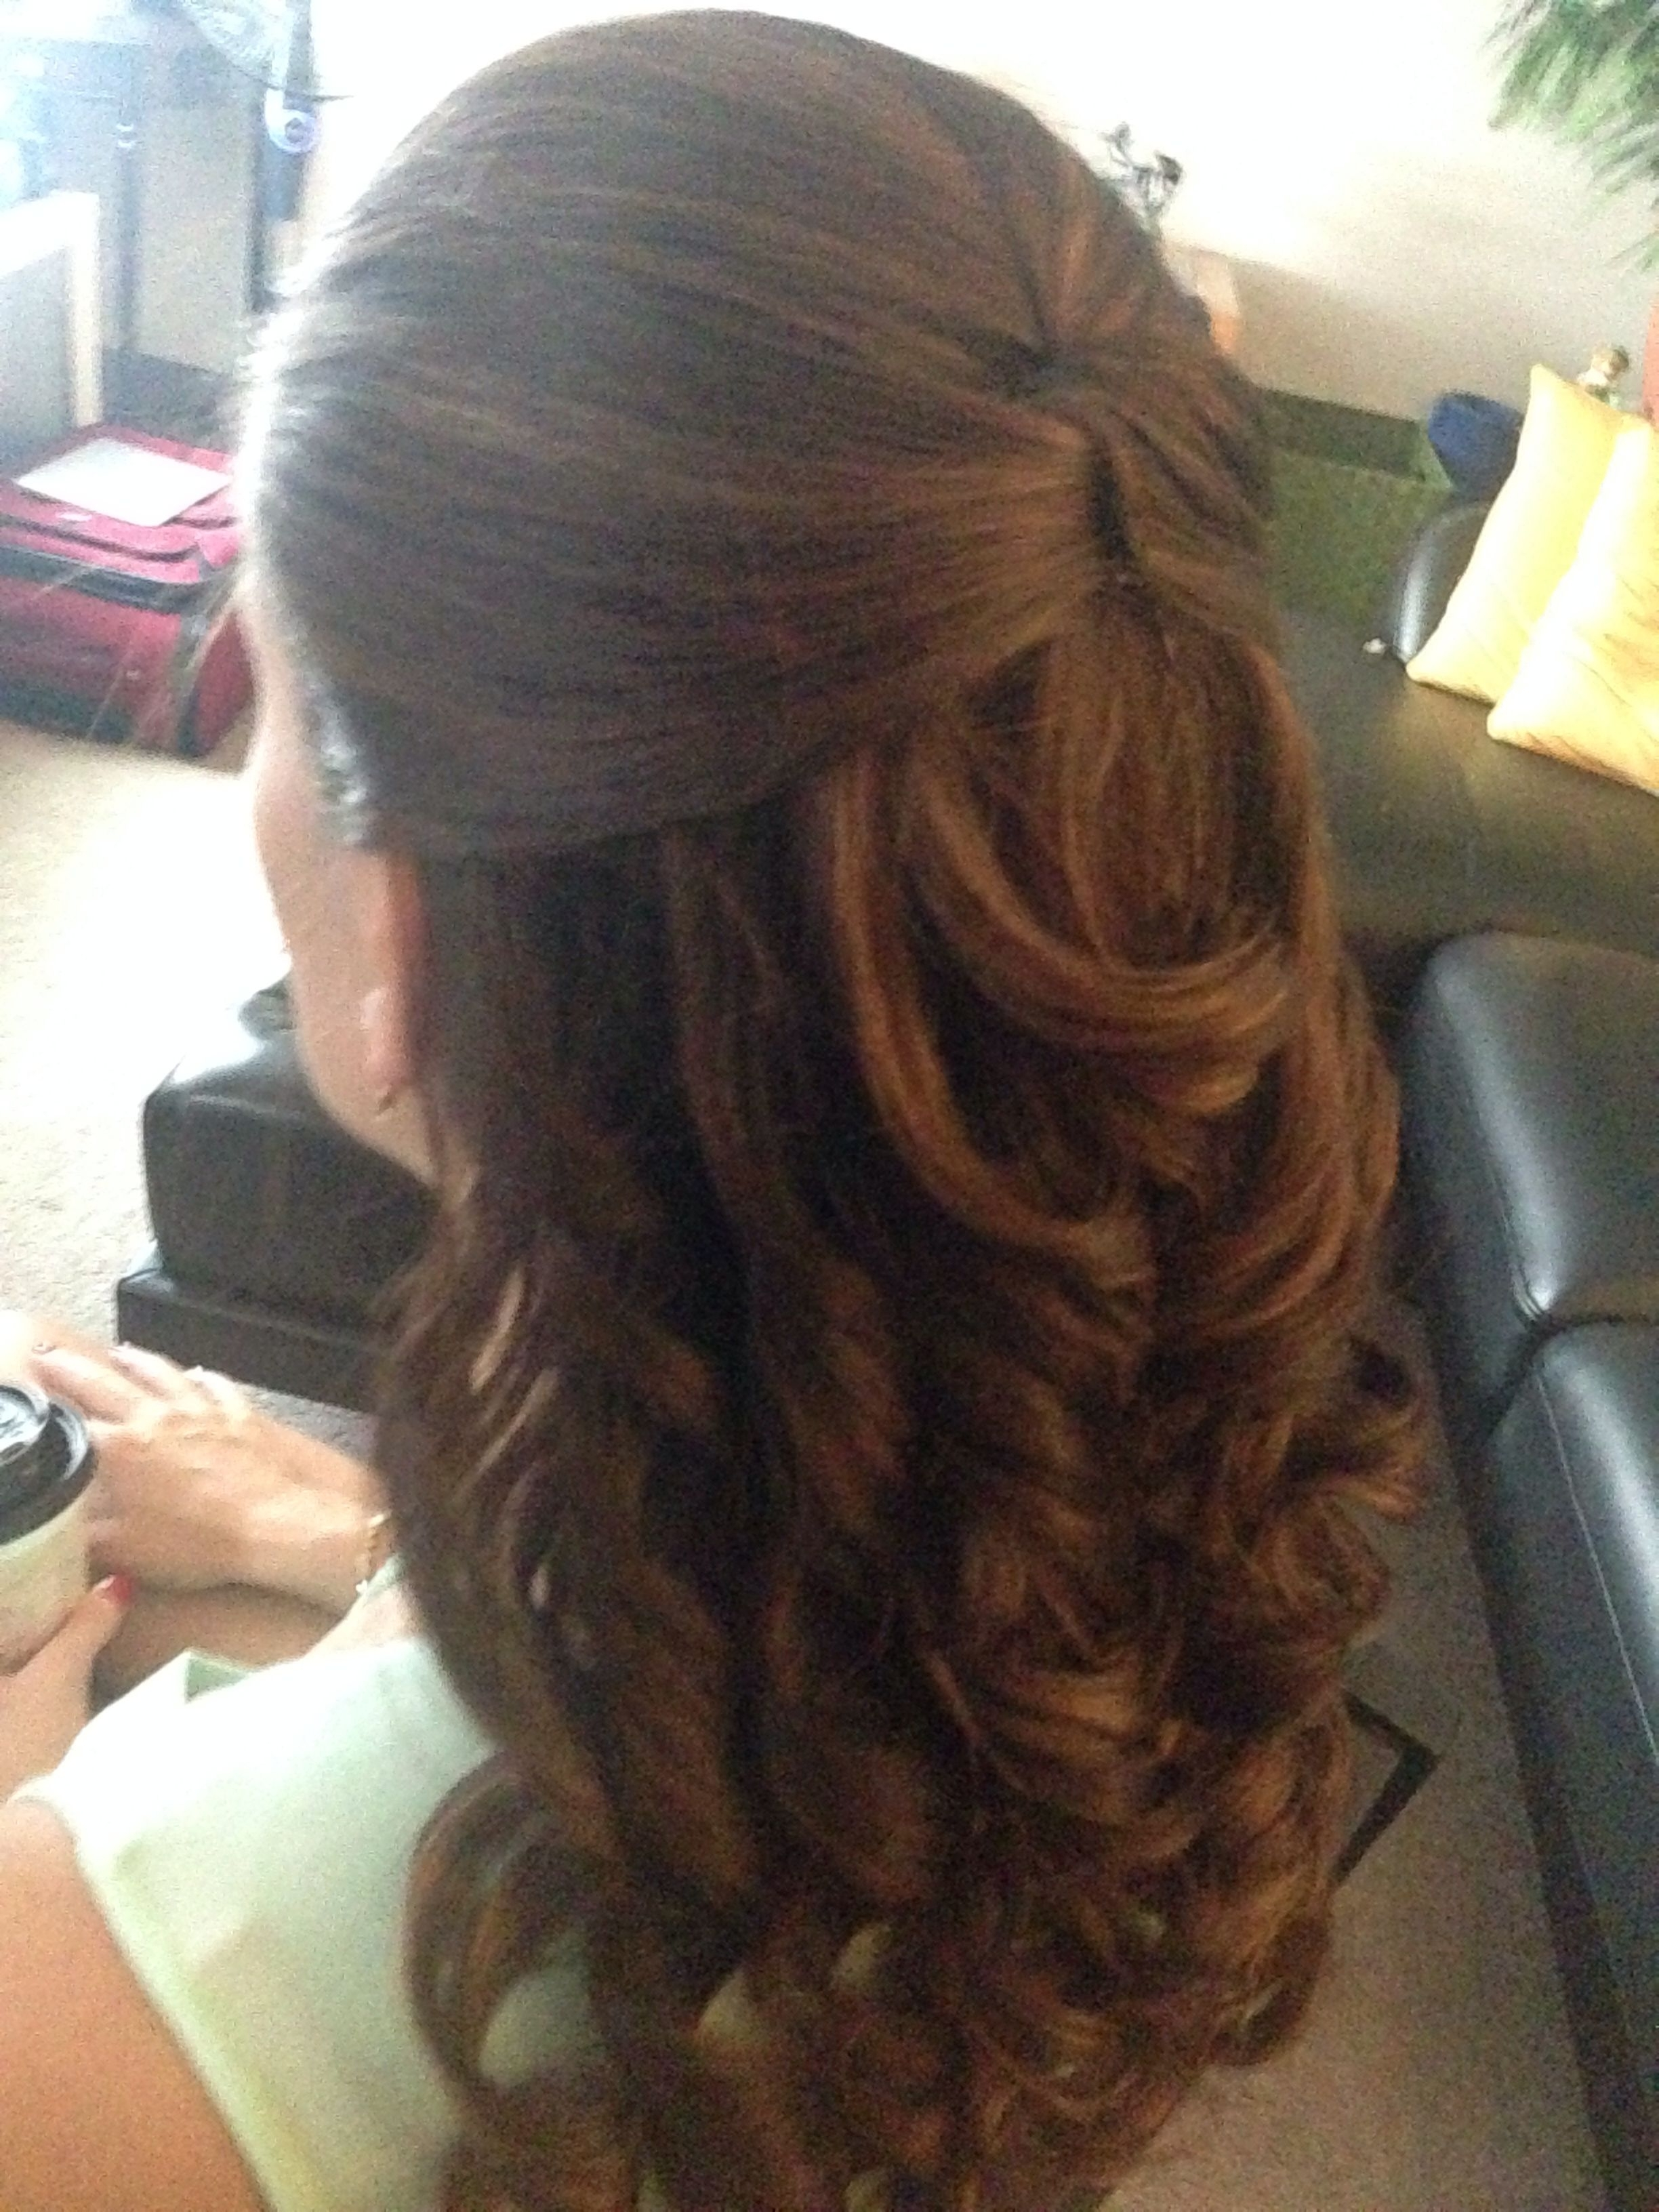 Recent Wedding Event Hairstyles Regarding Half Up Do With Curls For A Casual Or Wedding Event Hairstyle (View 12 of 15)